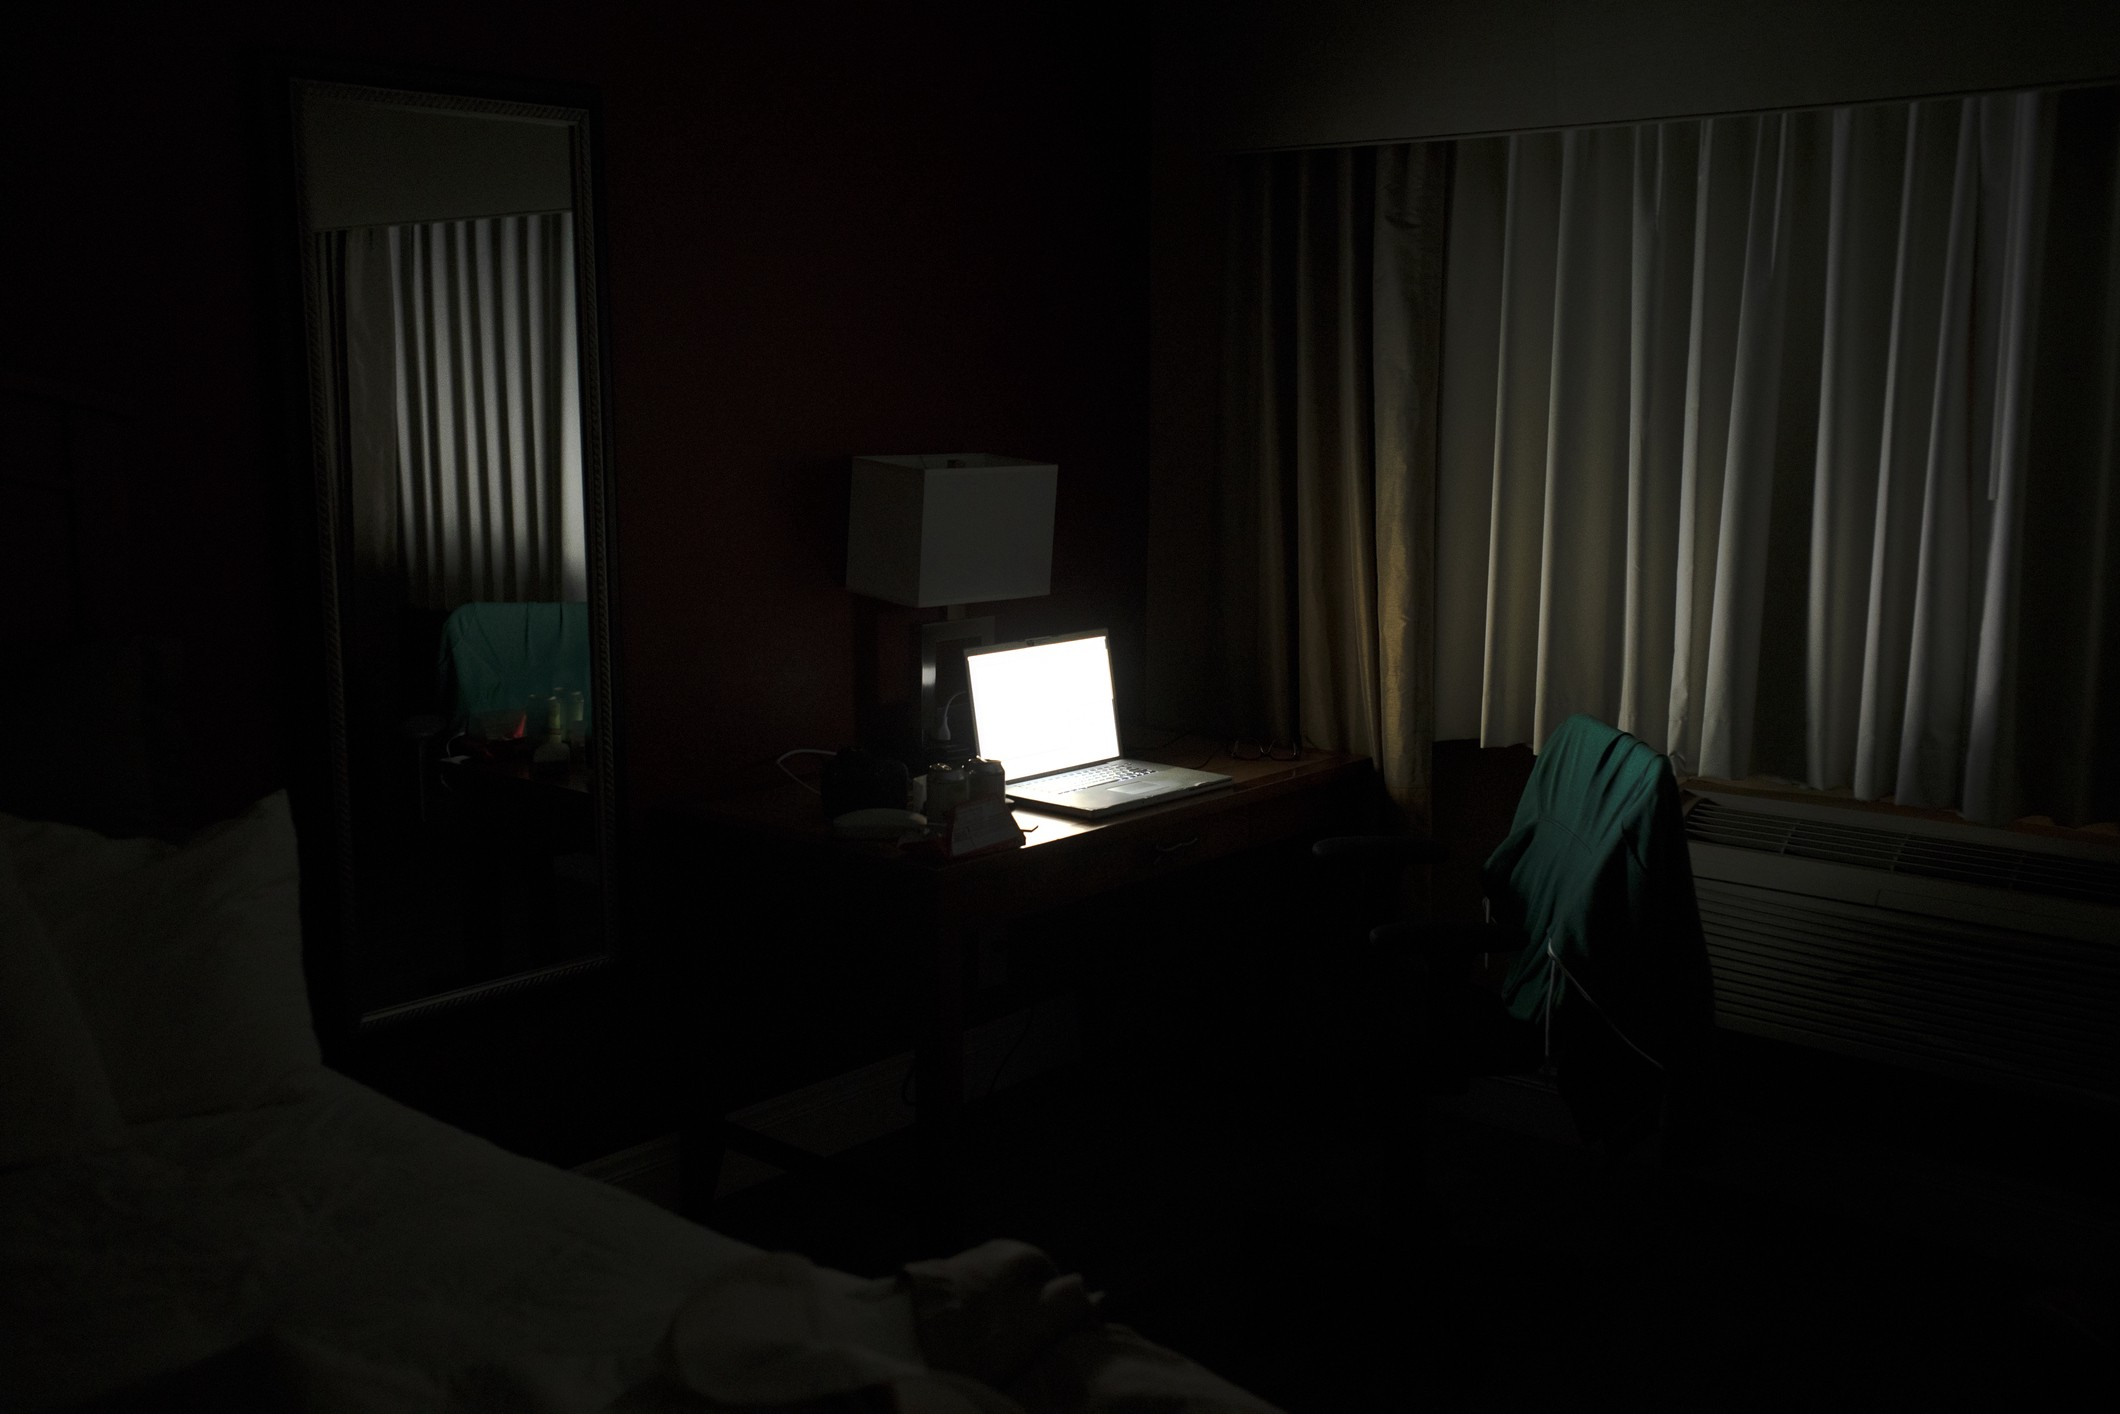 Only a bright laptop screen is visible in this dark room.